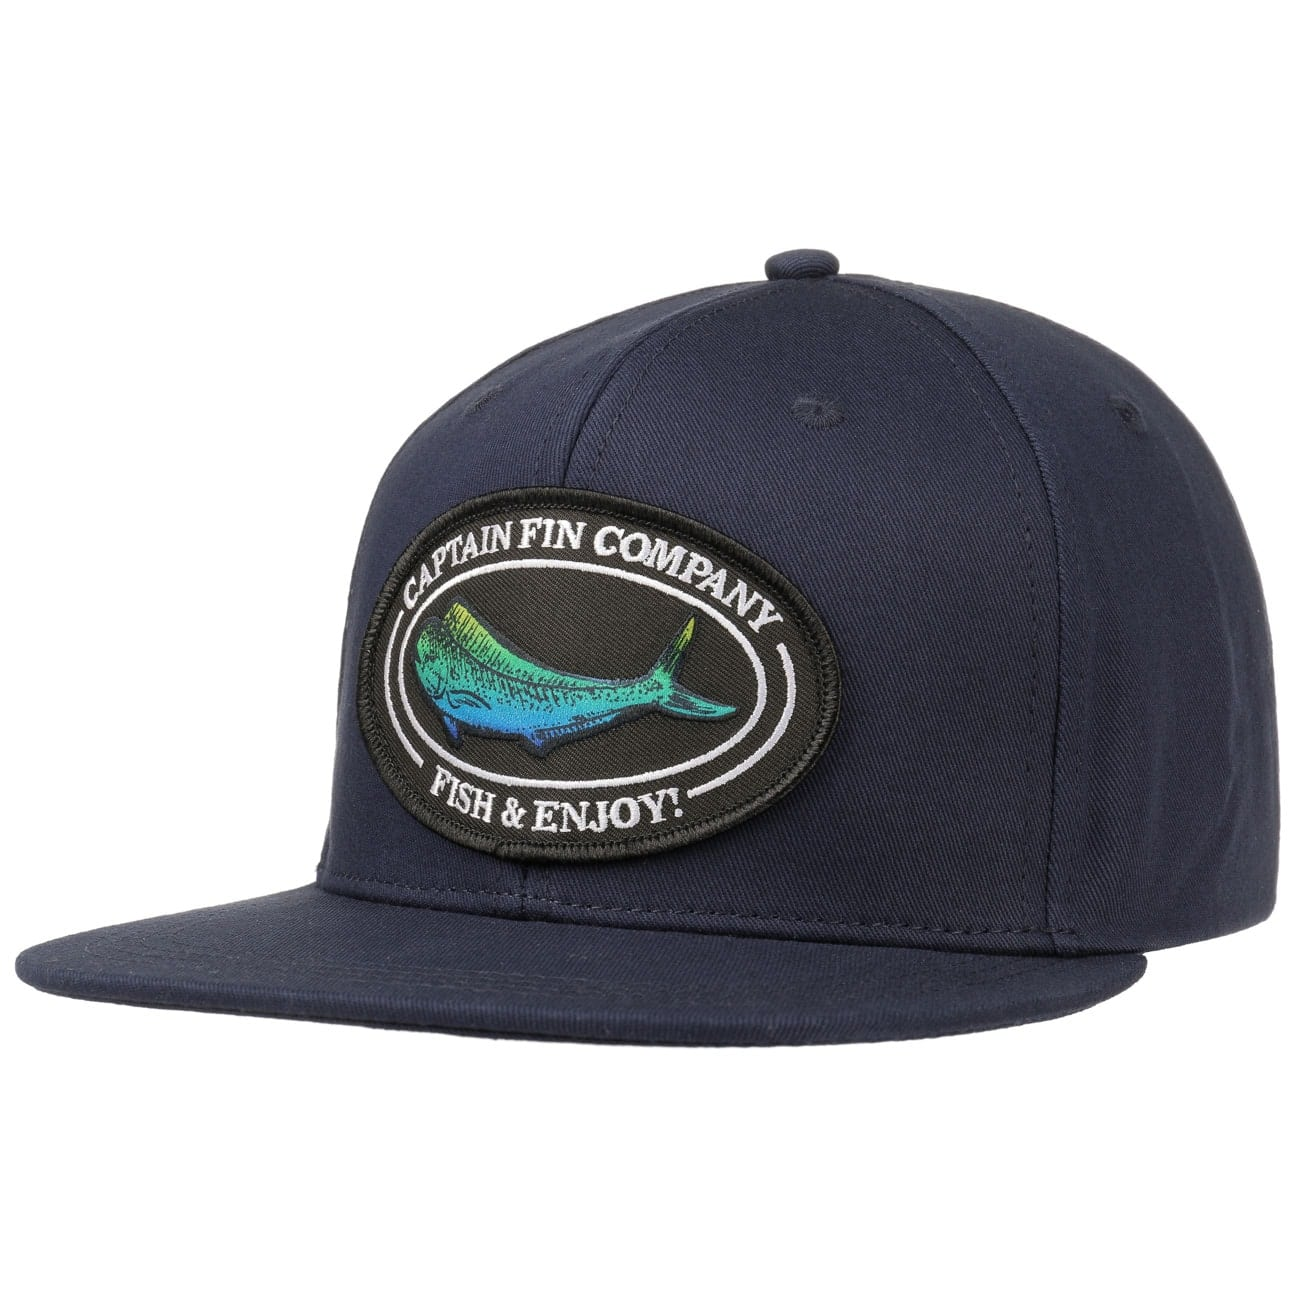 Casquette Snapback Dolphinfish by Captain Fin  baseball cap